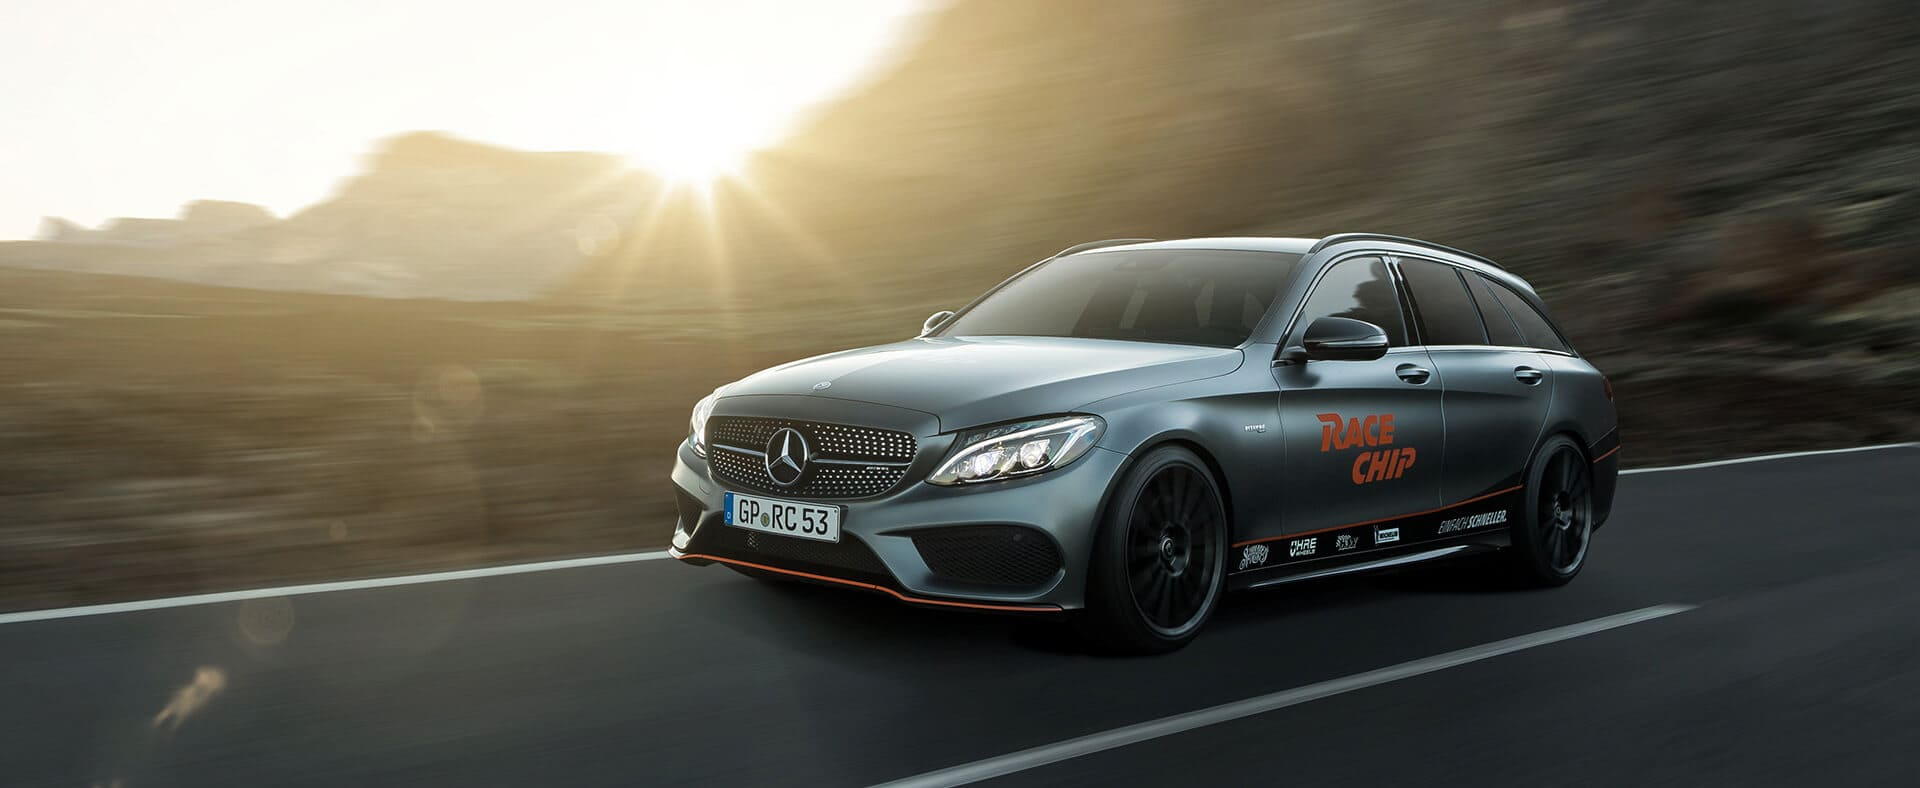 A station wagon with racing flair – the Mercedes Benz-AMG C43